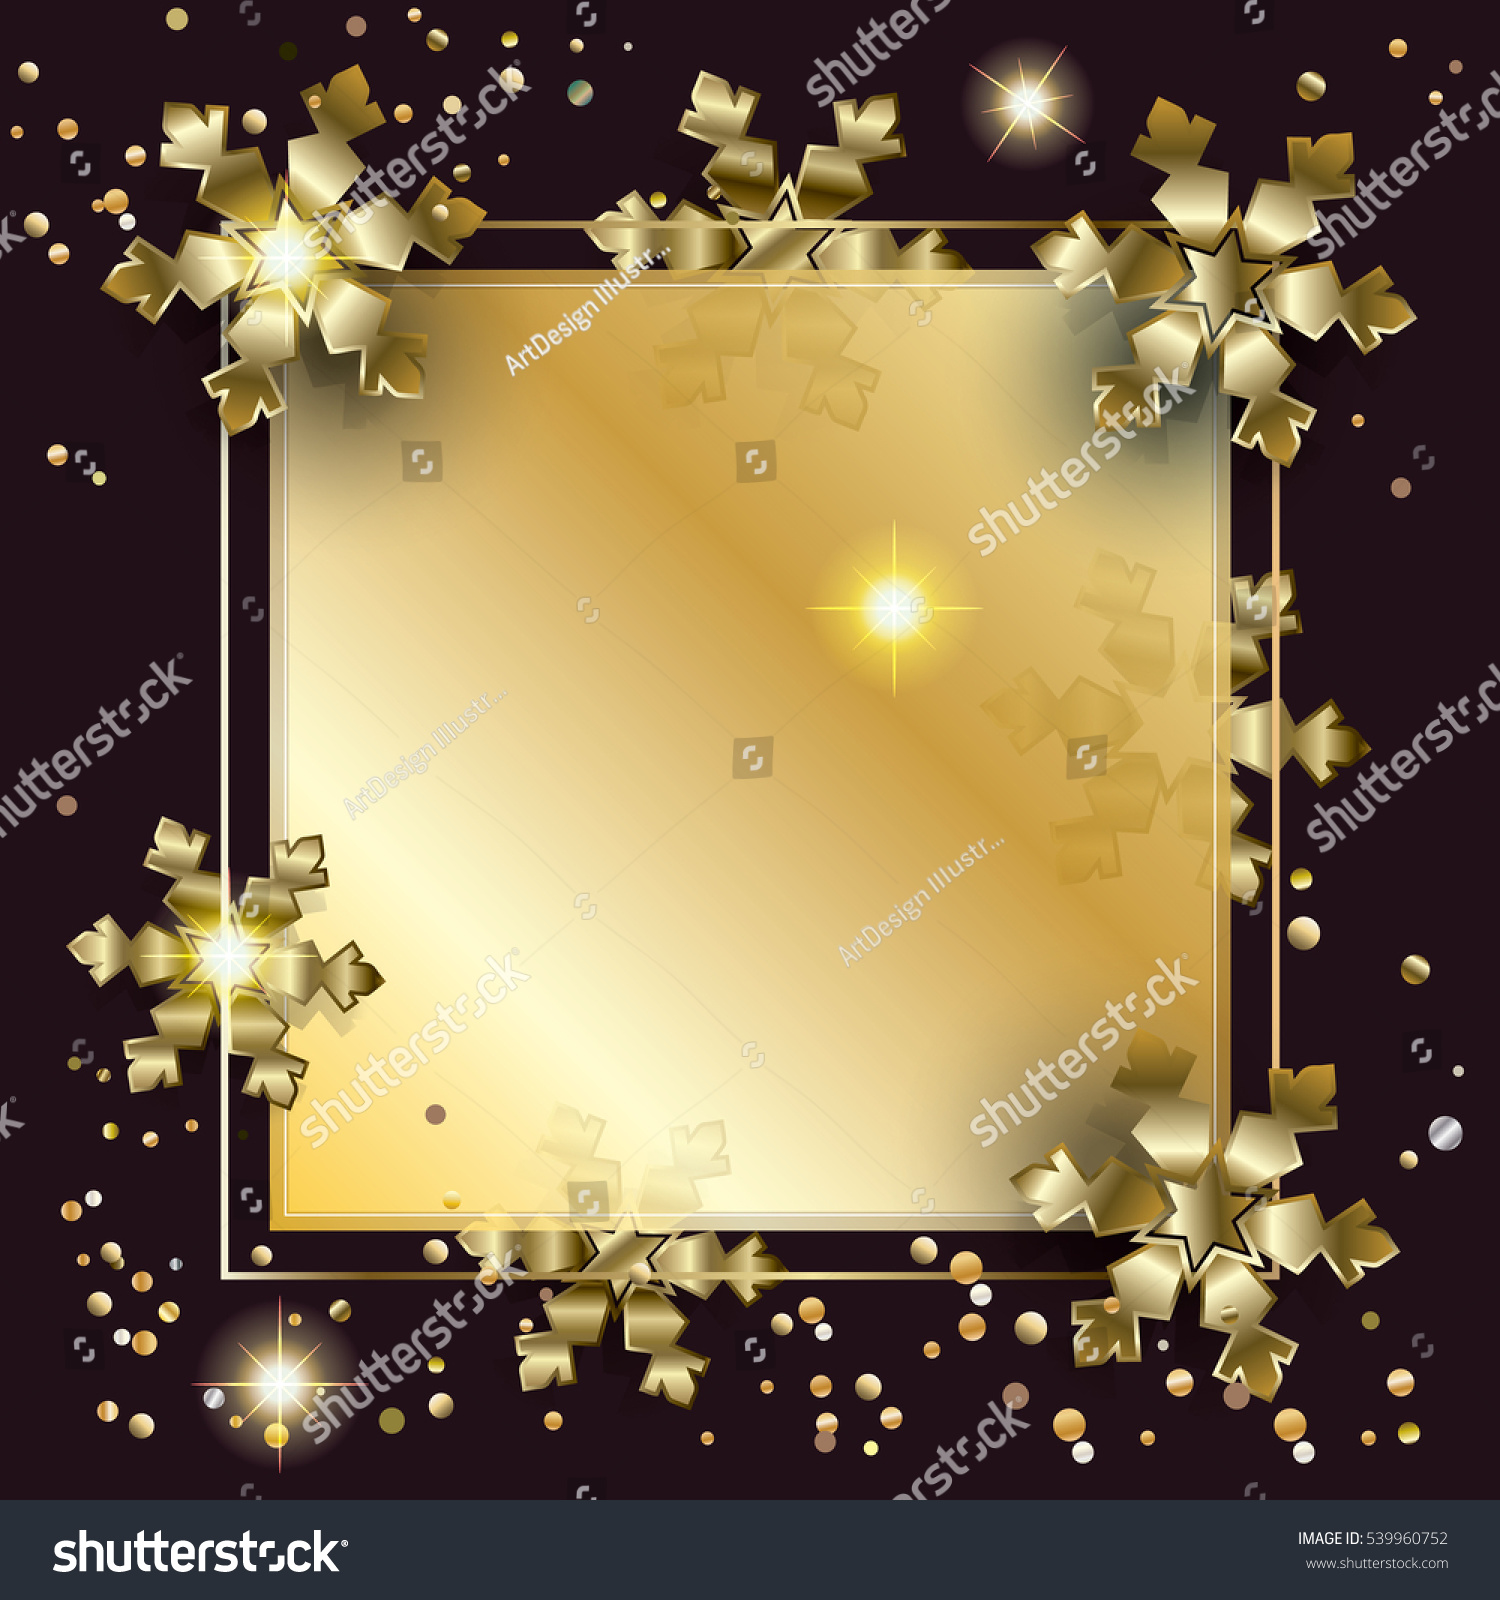 merry christmas and happy new year luxury greeting card background with glitter snowfall sparkle